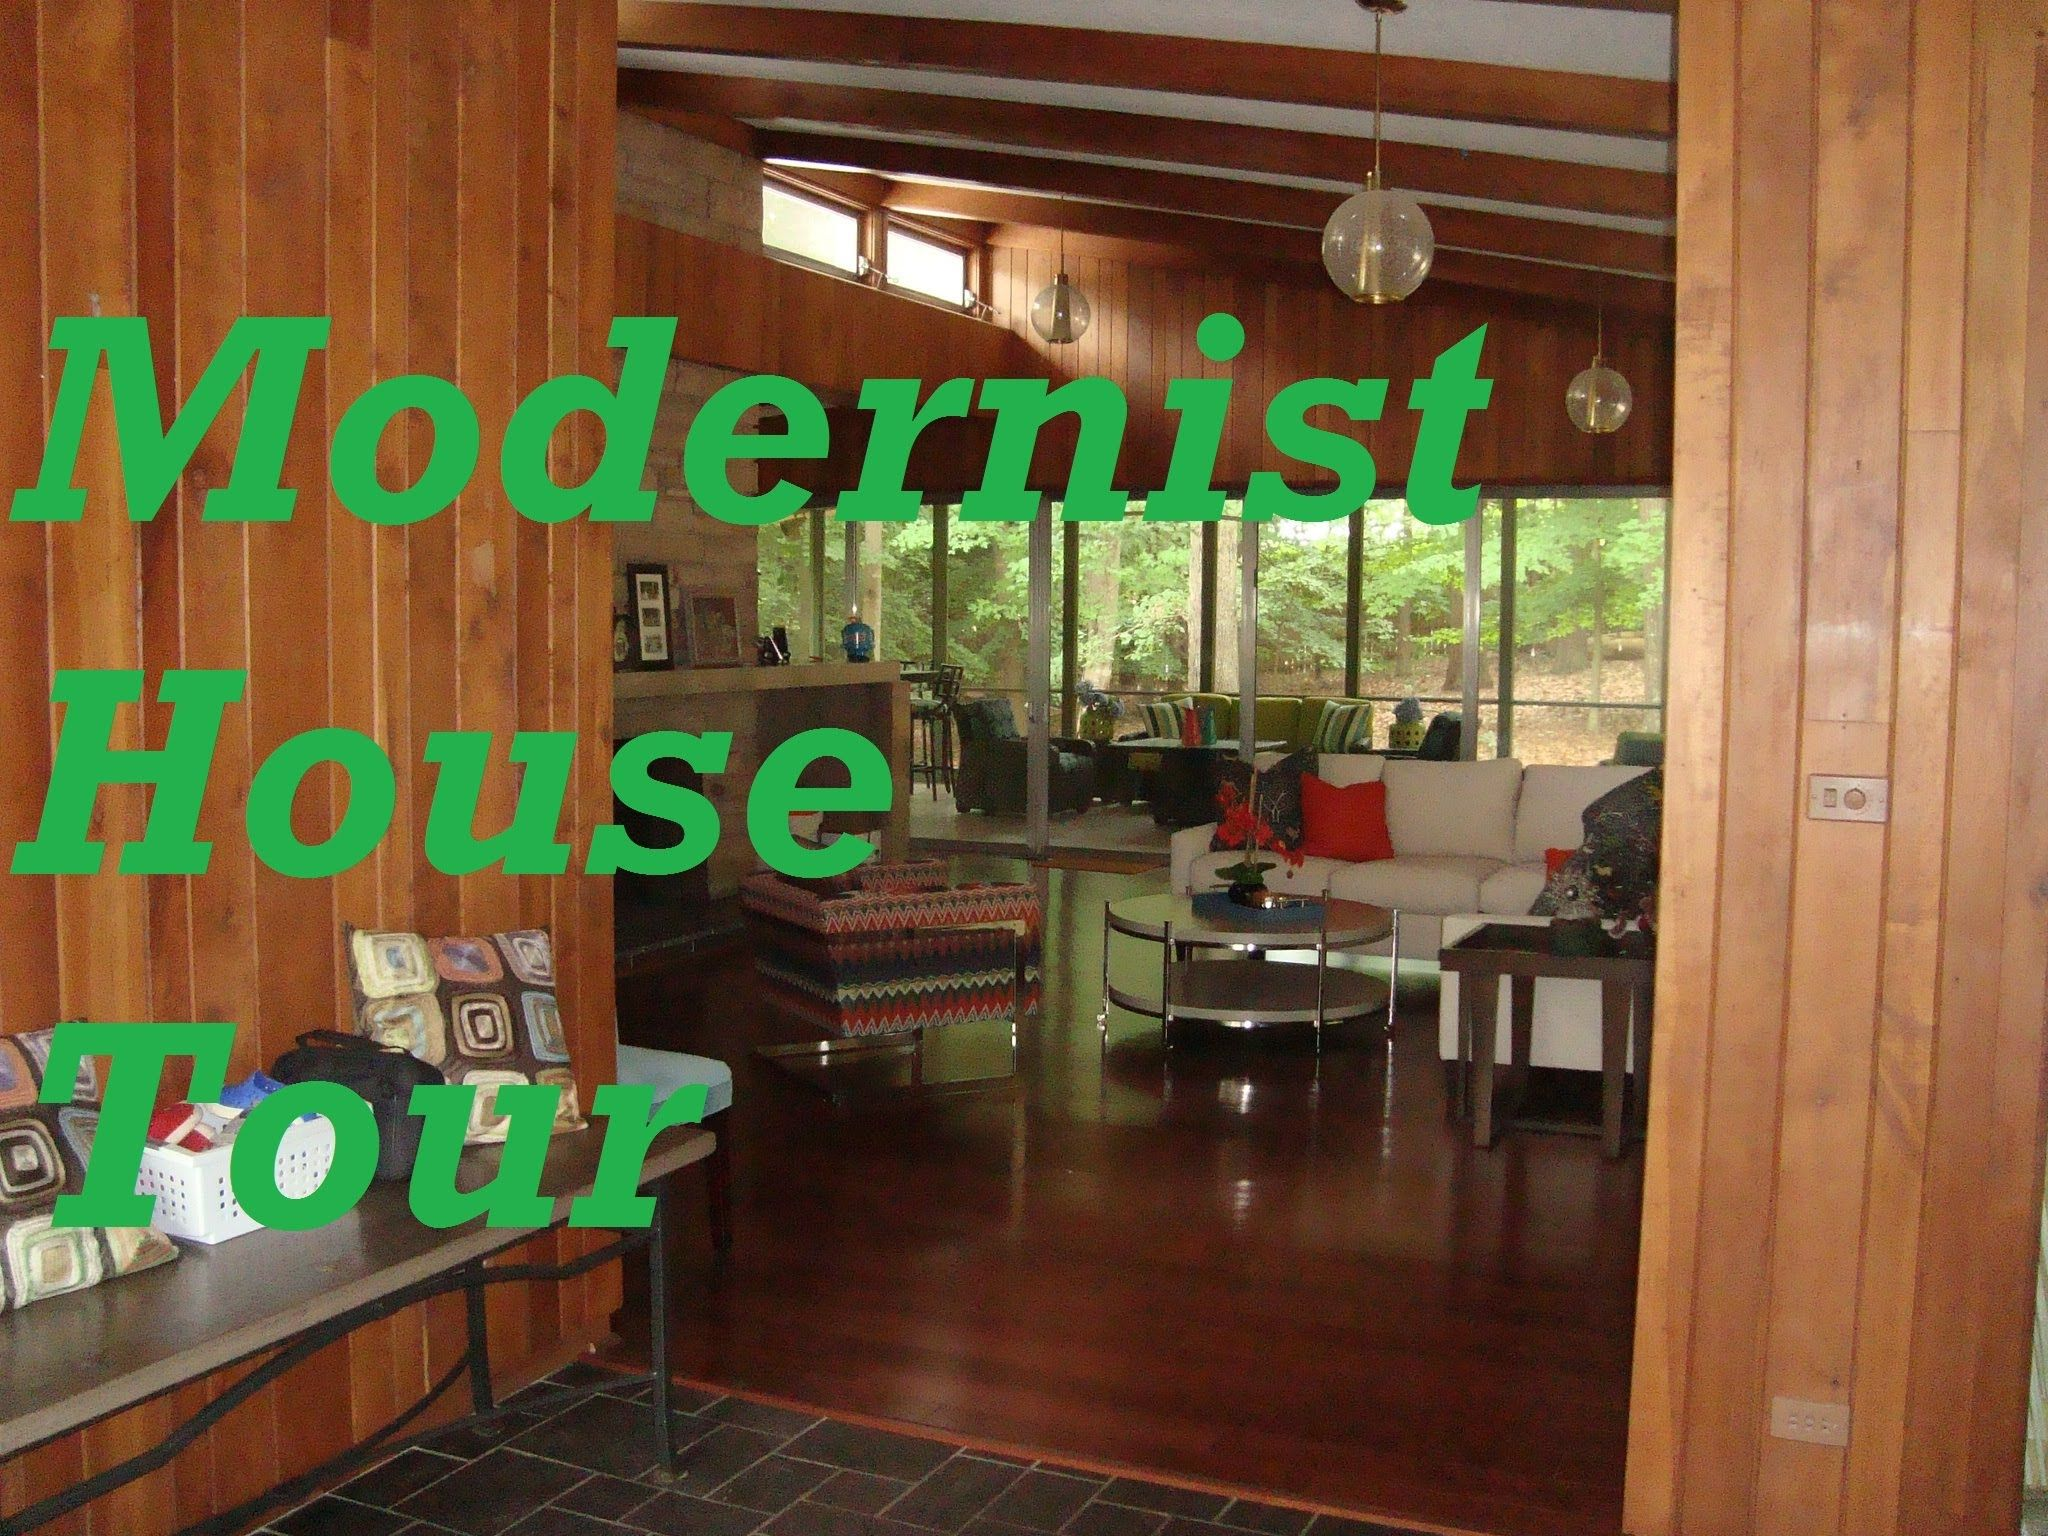 Everyone Has Got To See This Home If You Like Mid Century Mod Or Atomic Era Design This Home Will Make You Atomic Era Design Mid Century House Tours